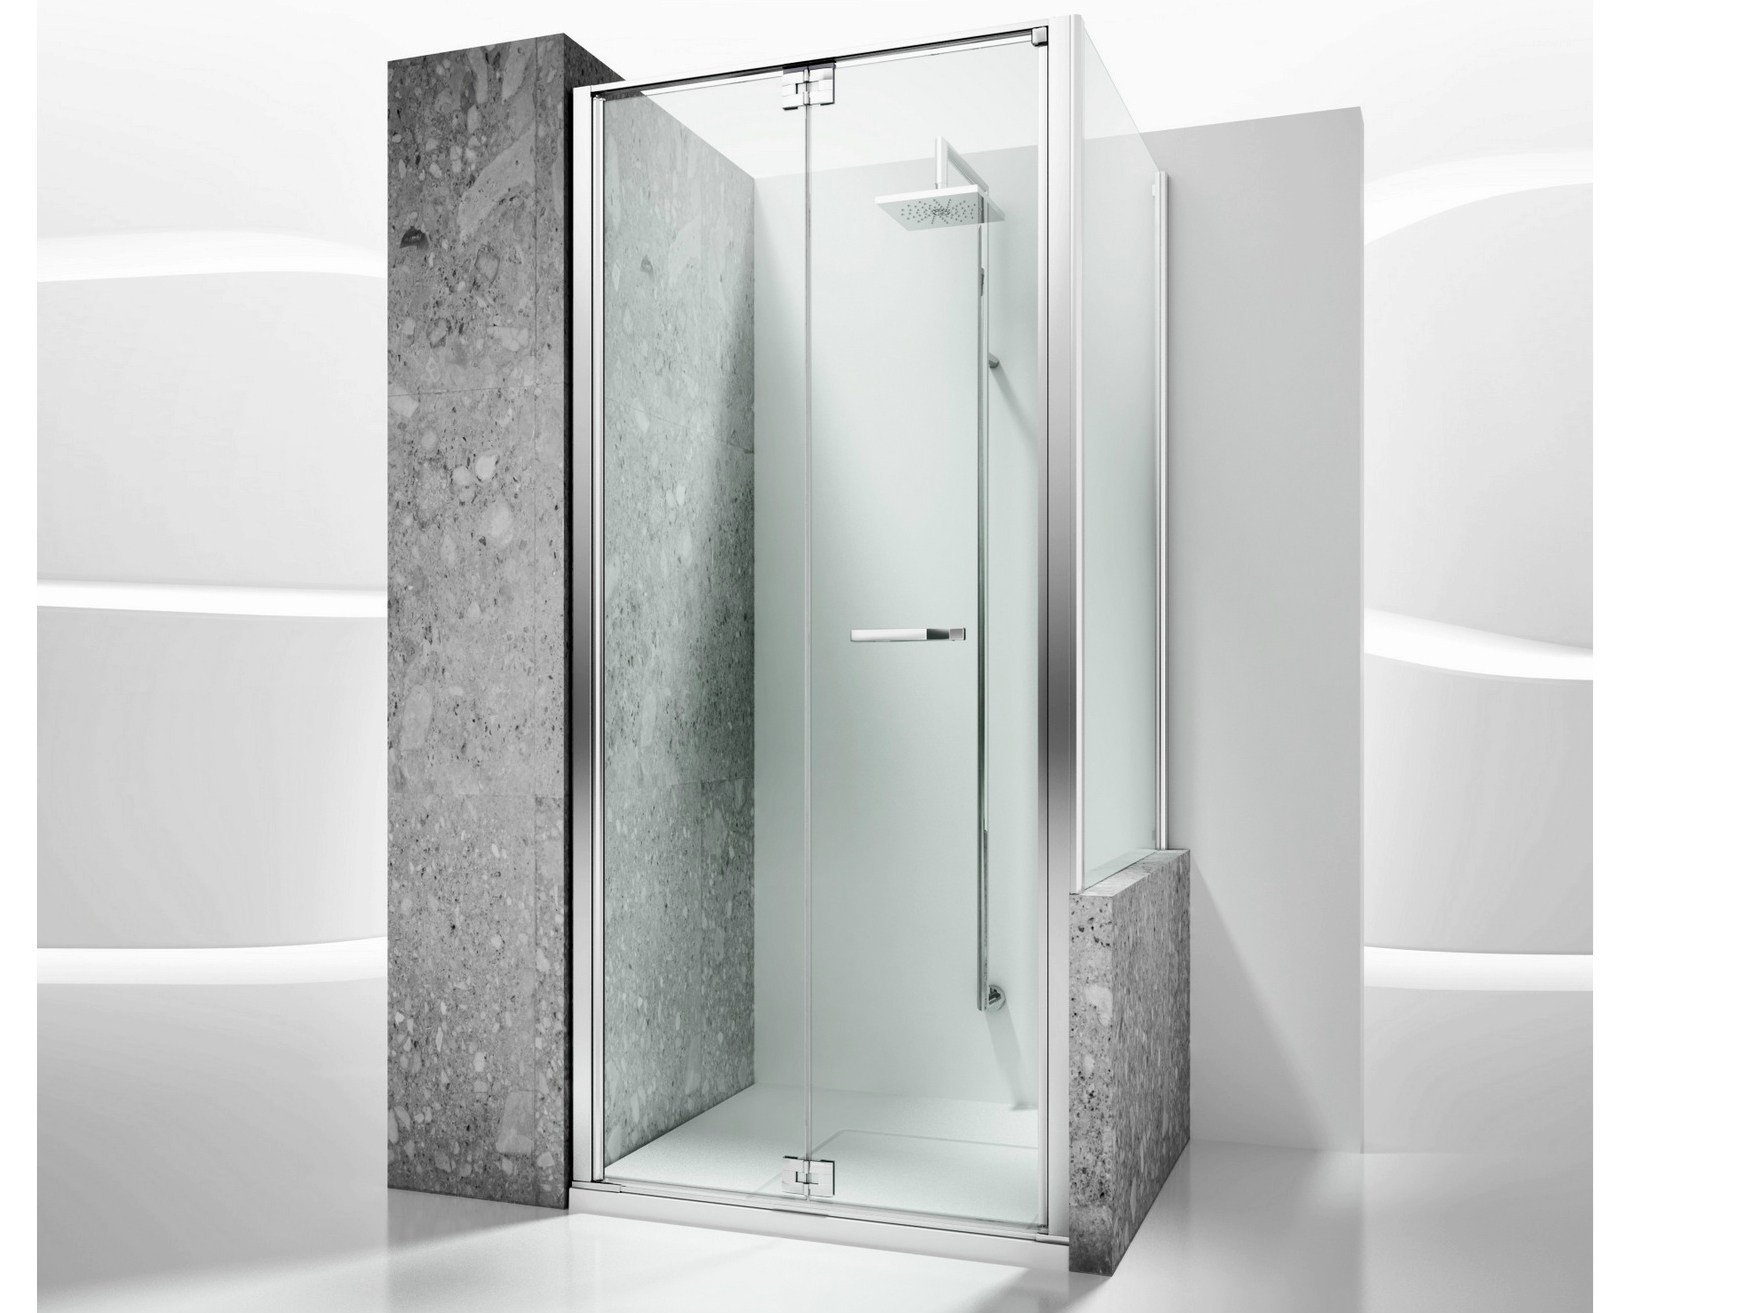 Paroi de douche sur mesure en verre tremp replay rn rv by for Douche italienne sur mesure